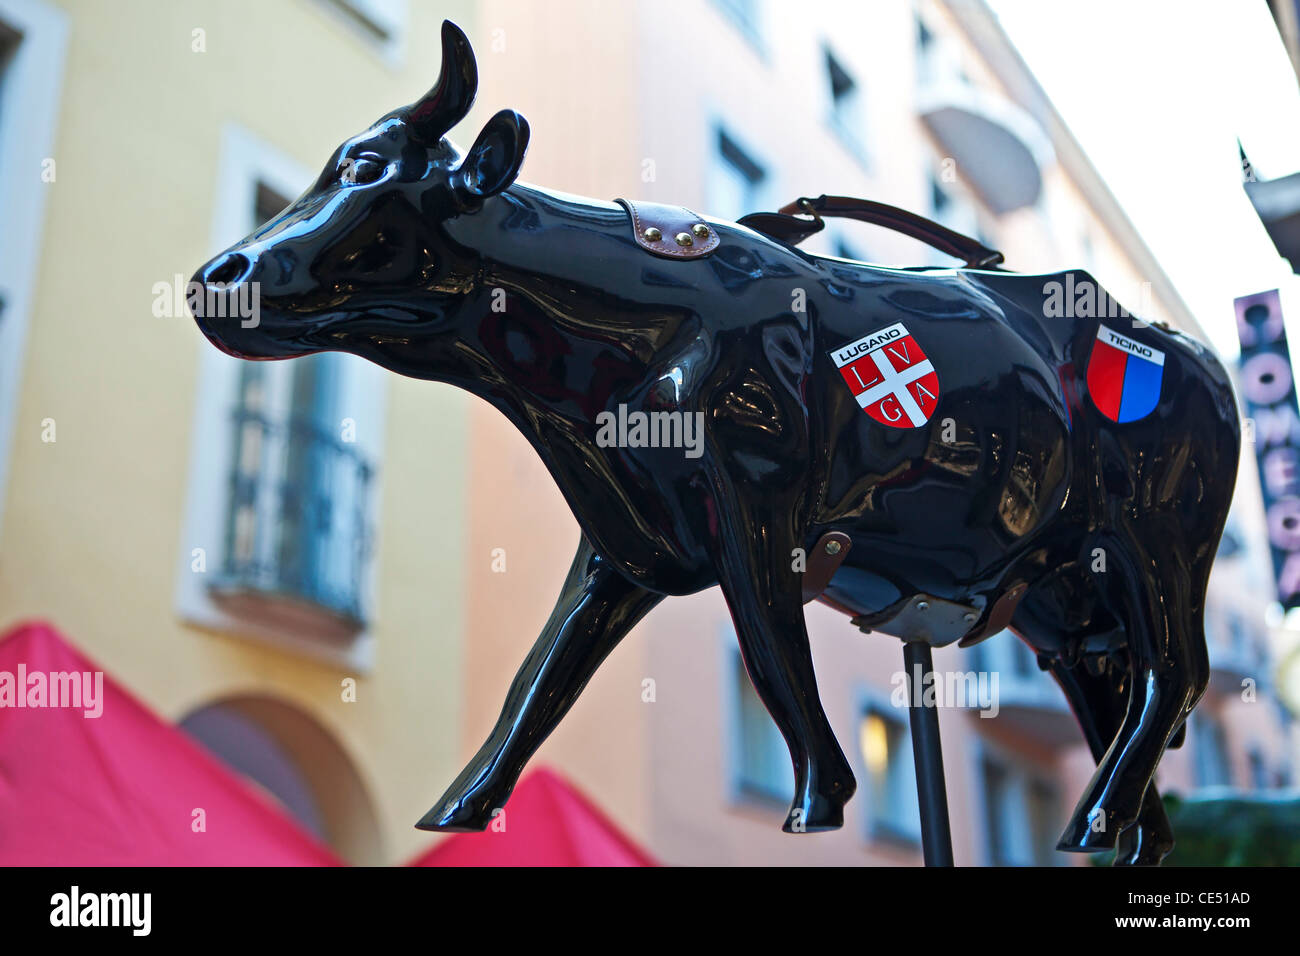 Figure of a Swiss cow with coat of arms of the canton of Ticino and Lugano. - Stock Image